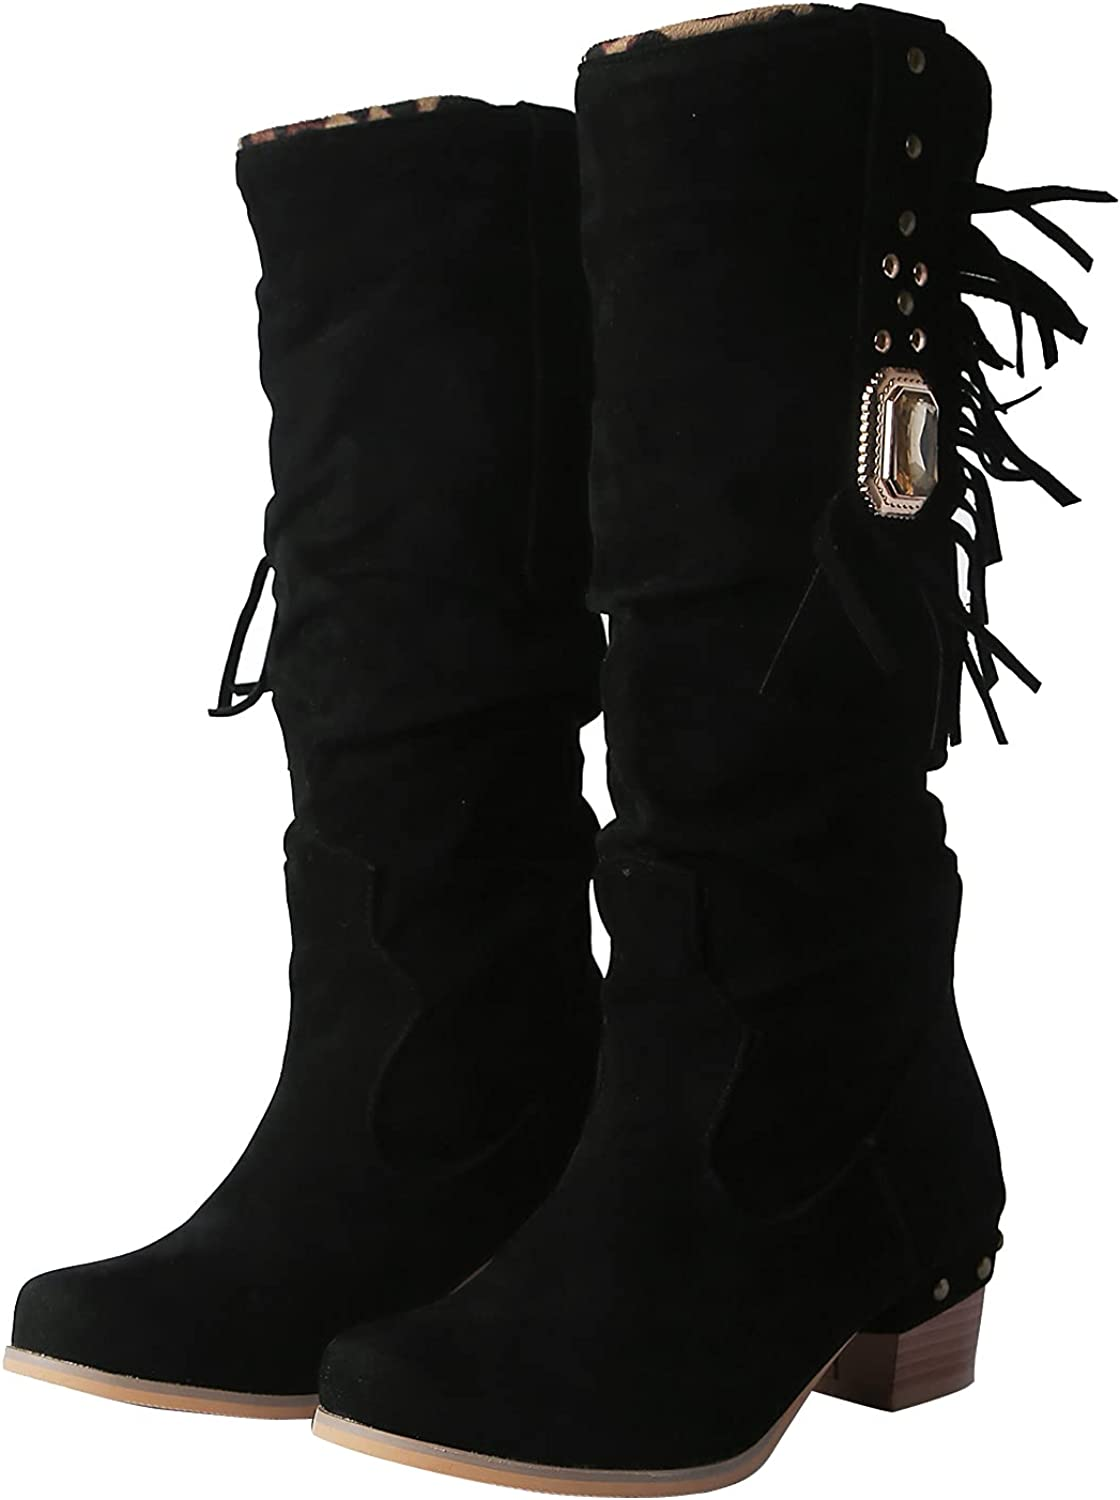 DunaCuna Women Slouch Boots Mid Calf Block Mid Heel Pull On Stacked Knee Boots Fashion Round Toe Retro Boots